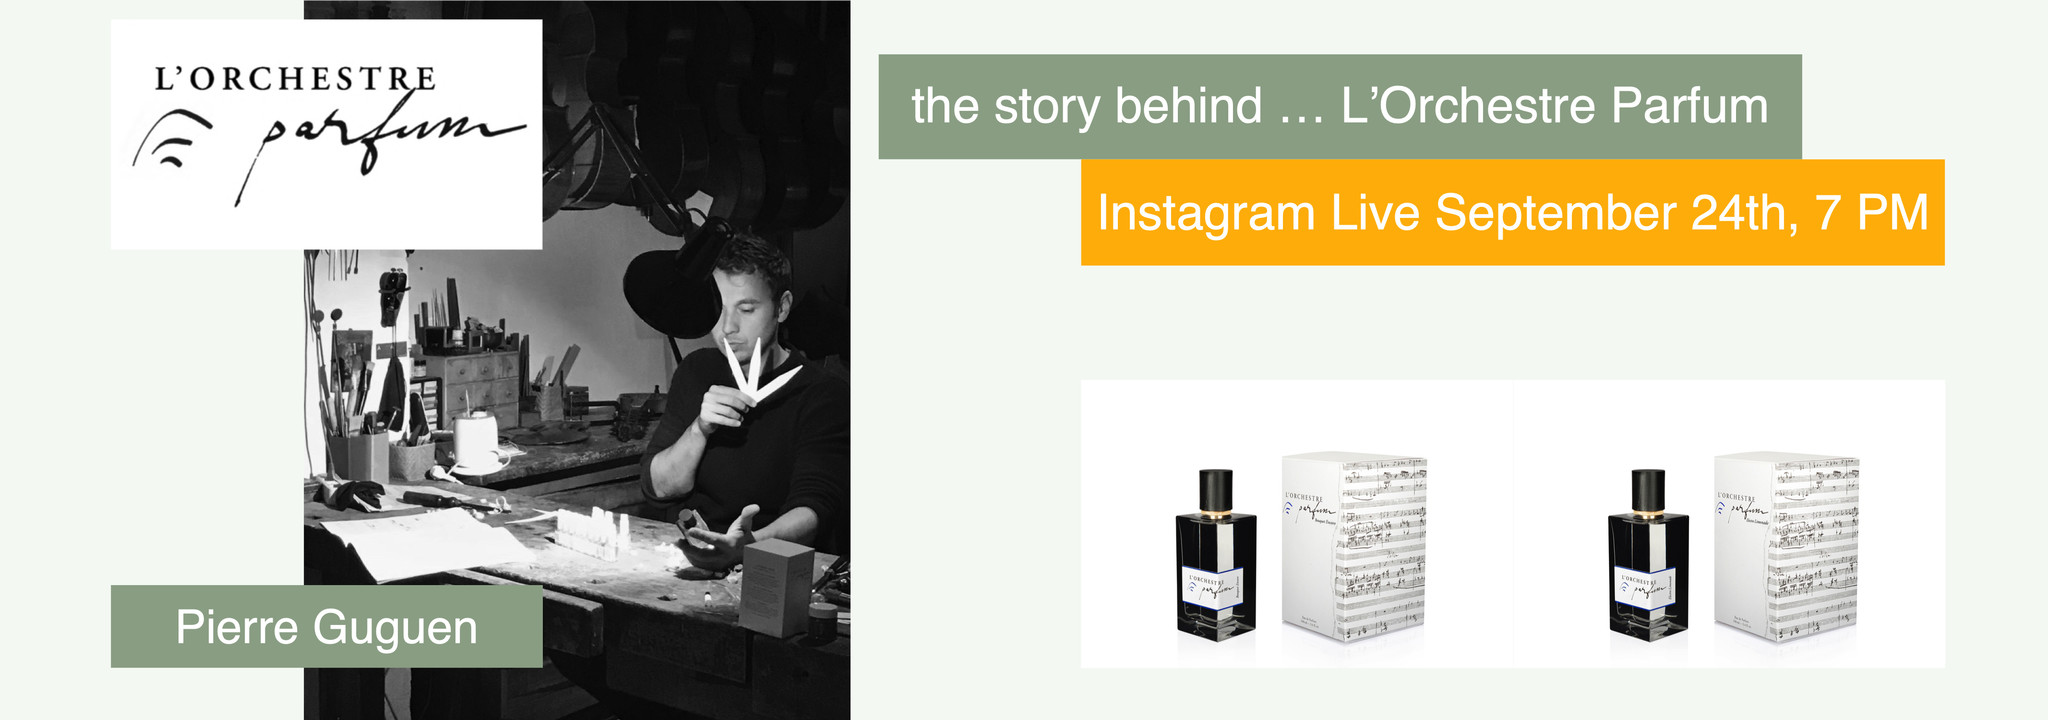 The story behind ... L'Orchestre Parfum